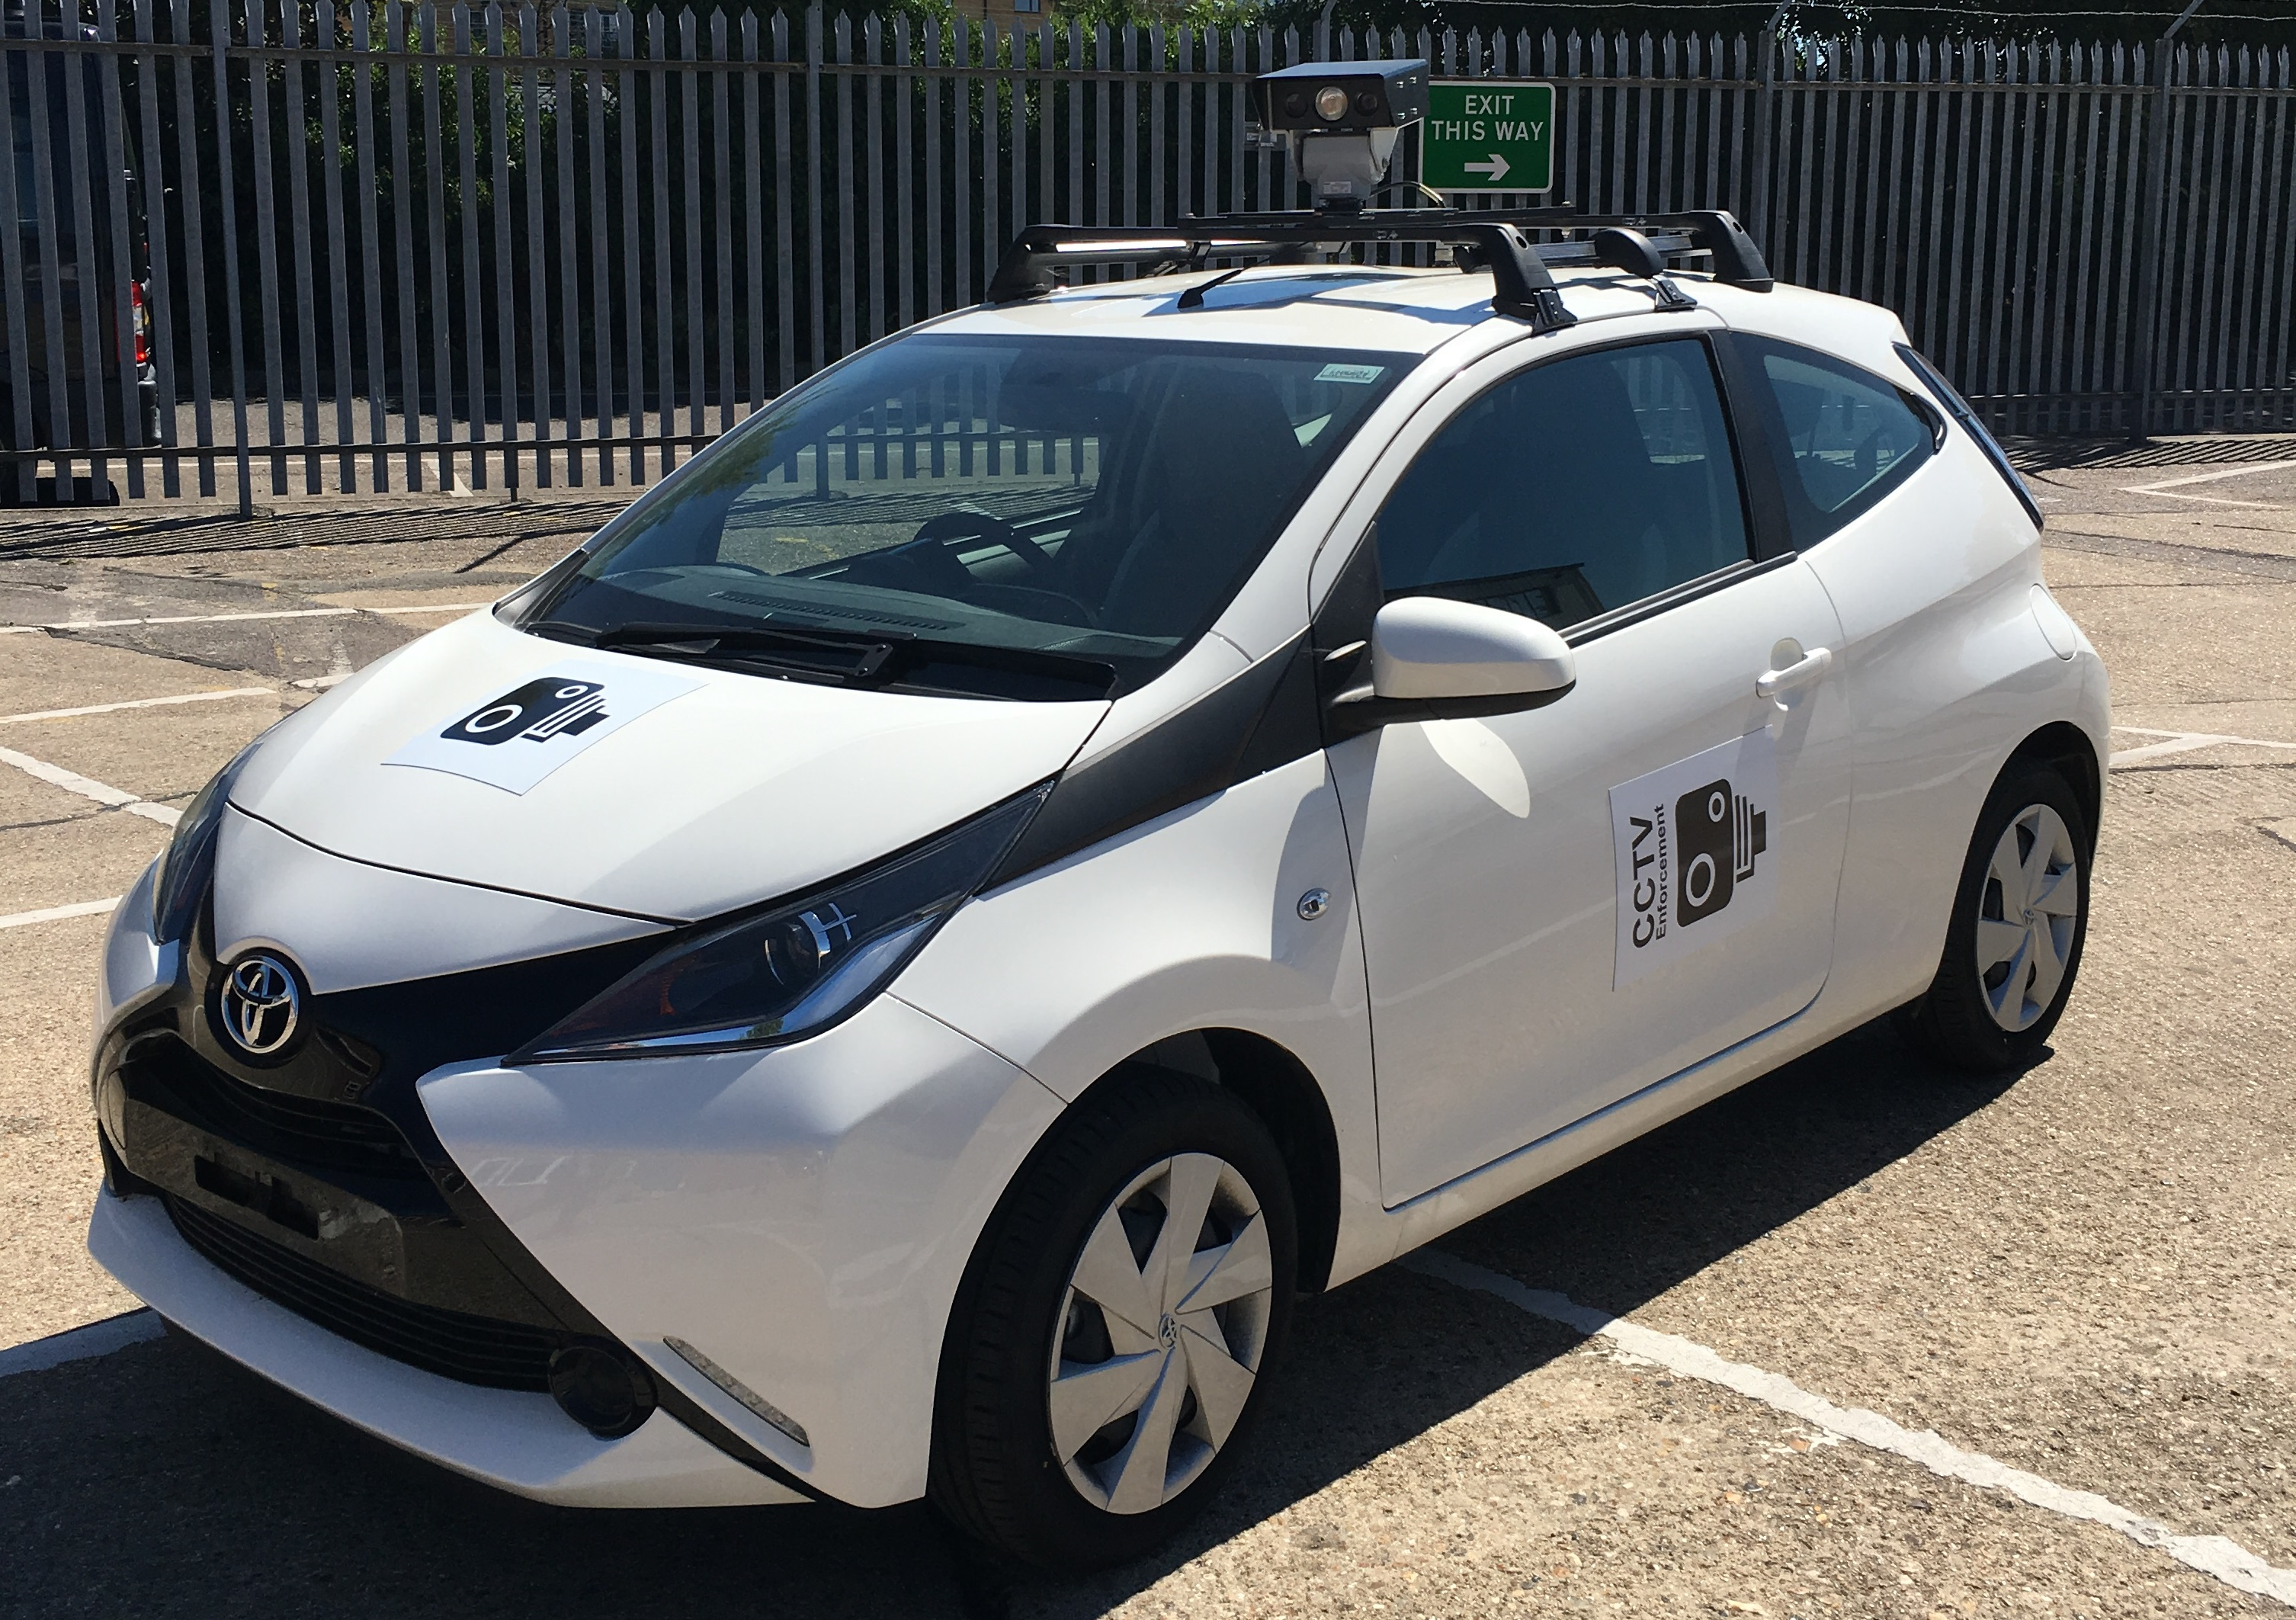 Photo of the CCTV Car